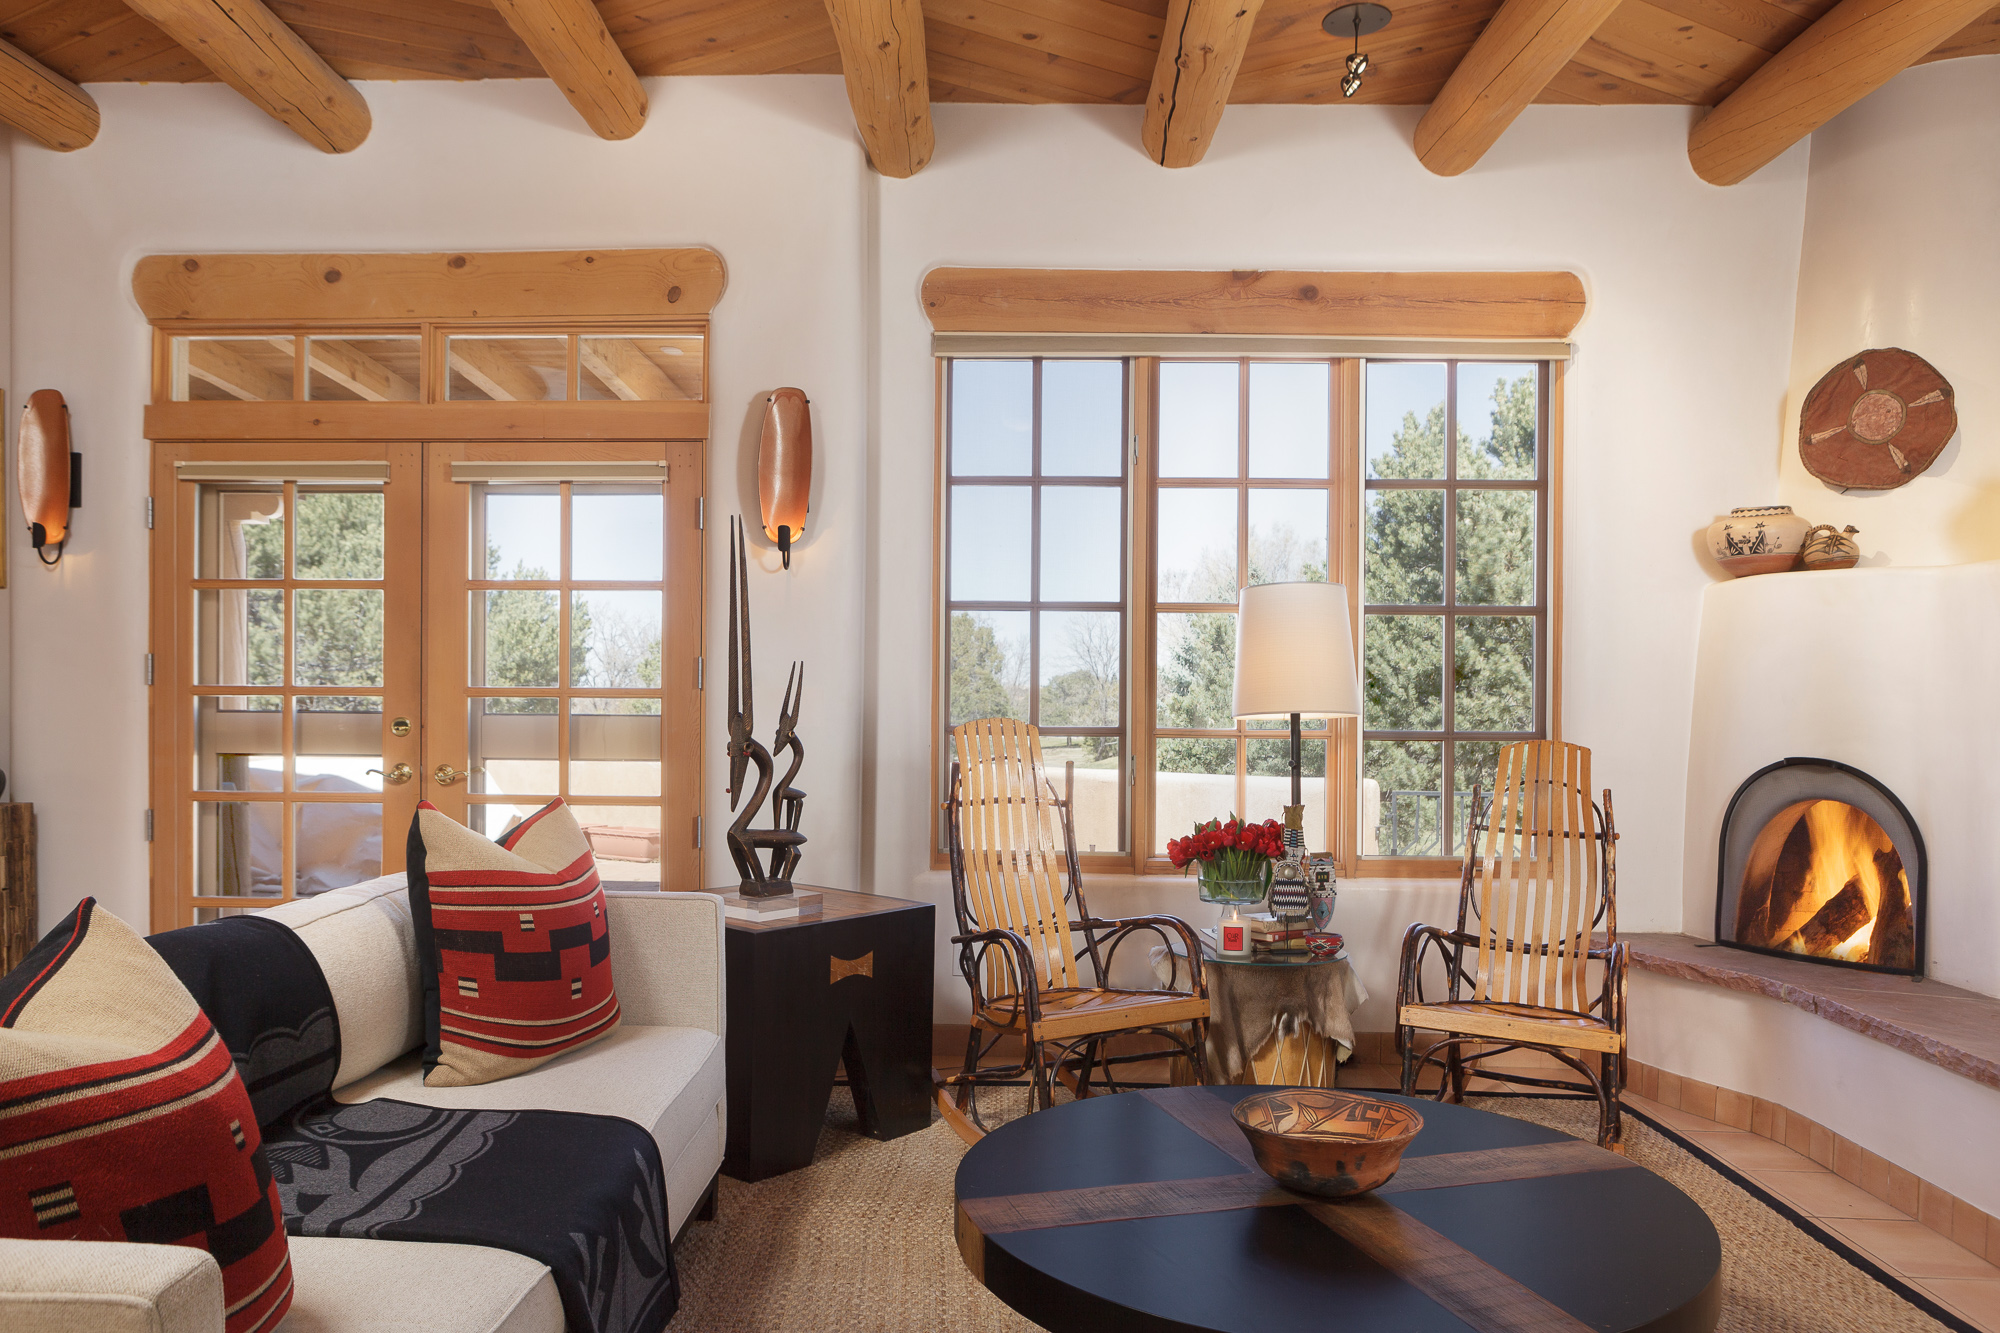 Two Pines     Chandler Prewitt Design New Mexico Style  interior design  southwest style